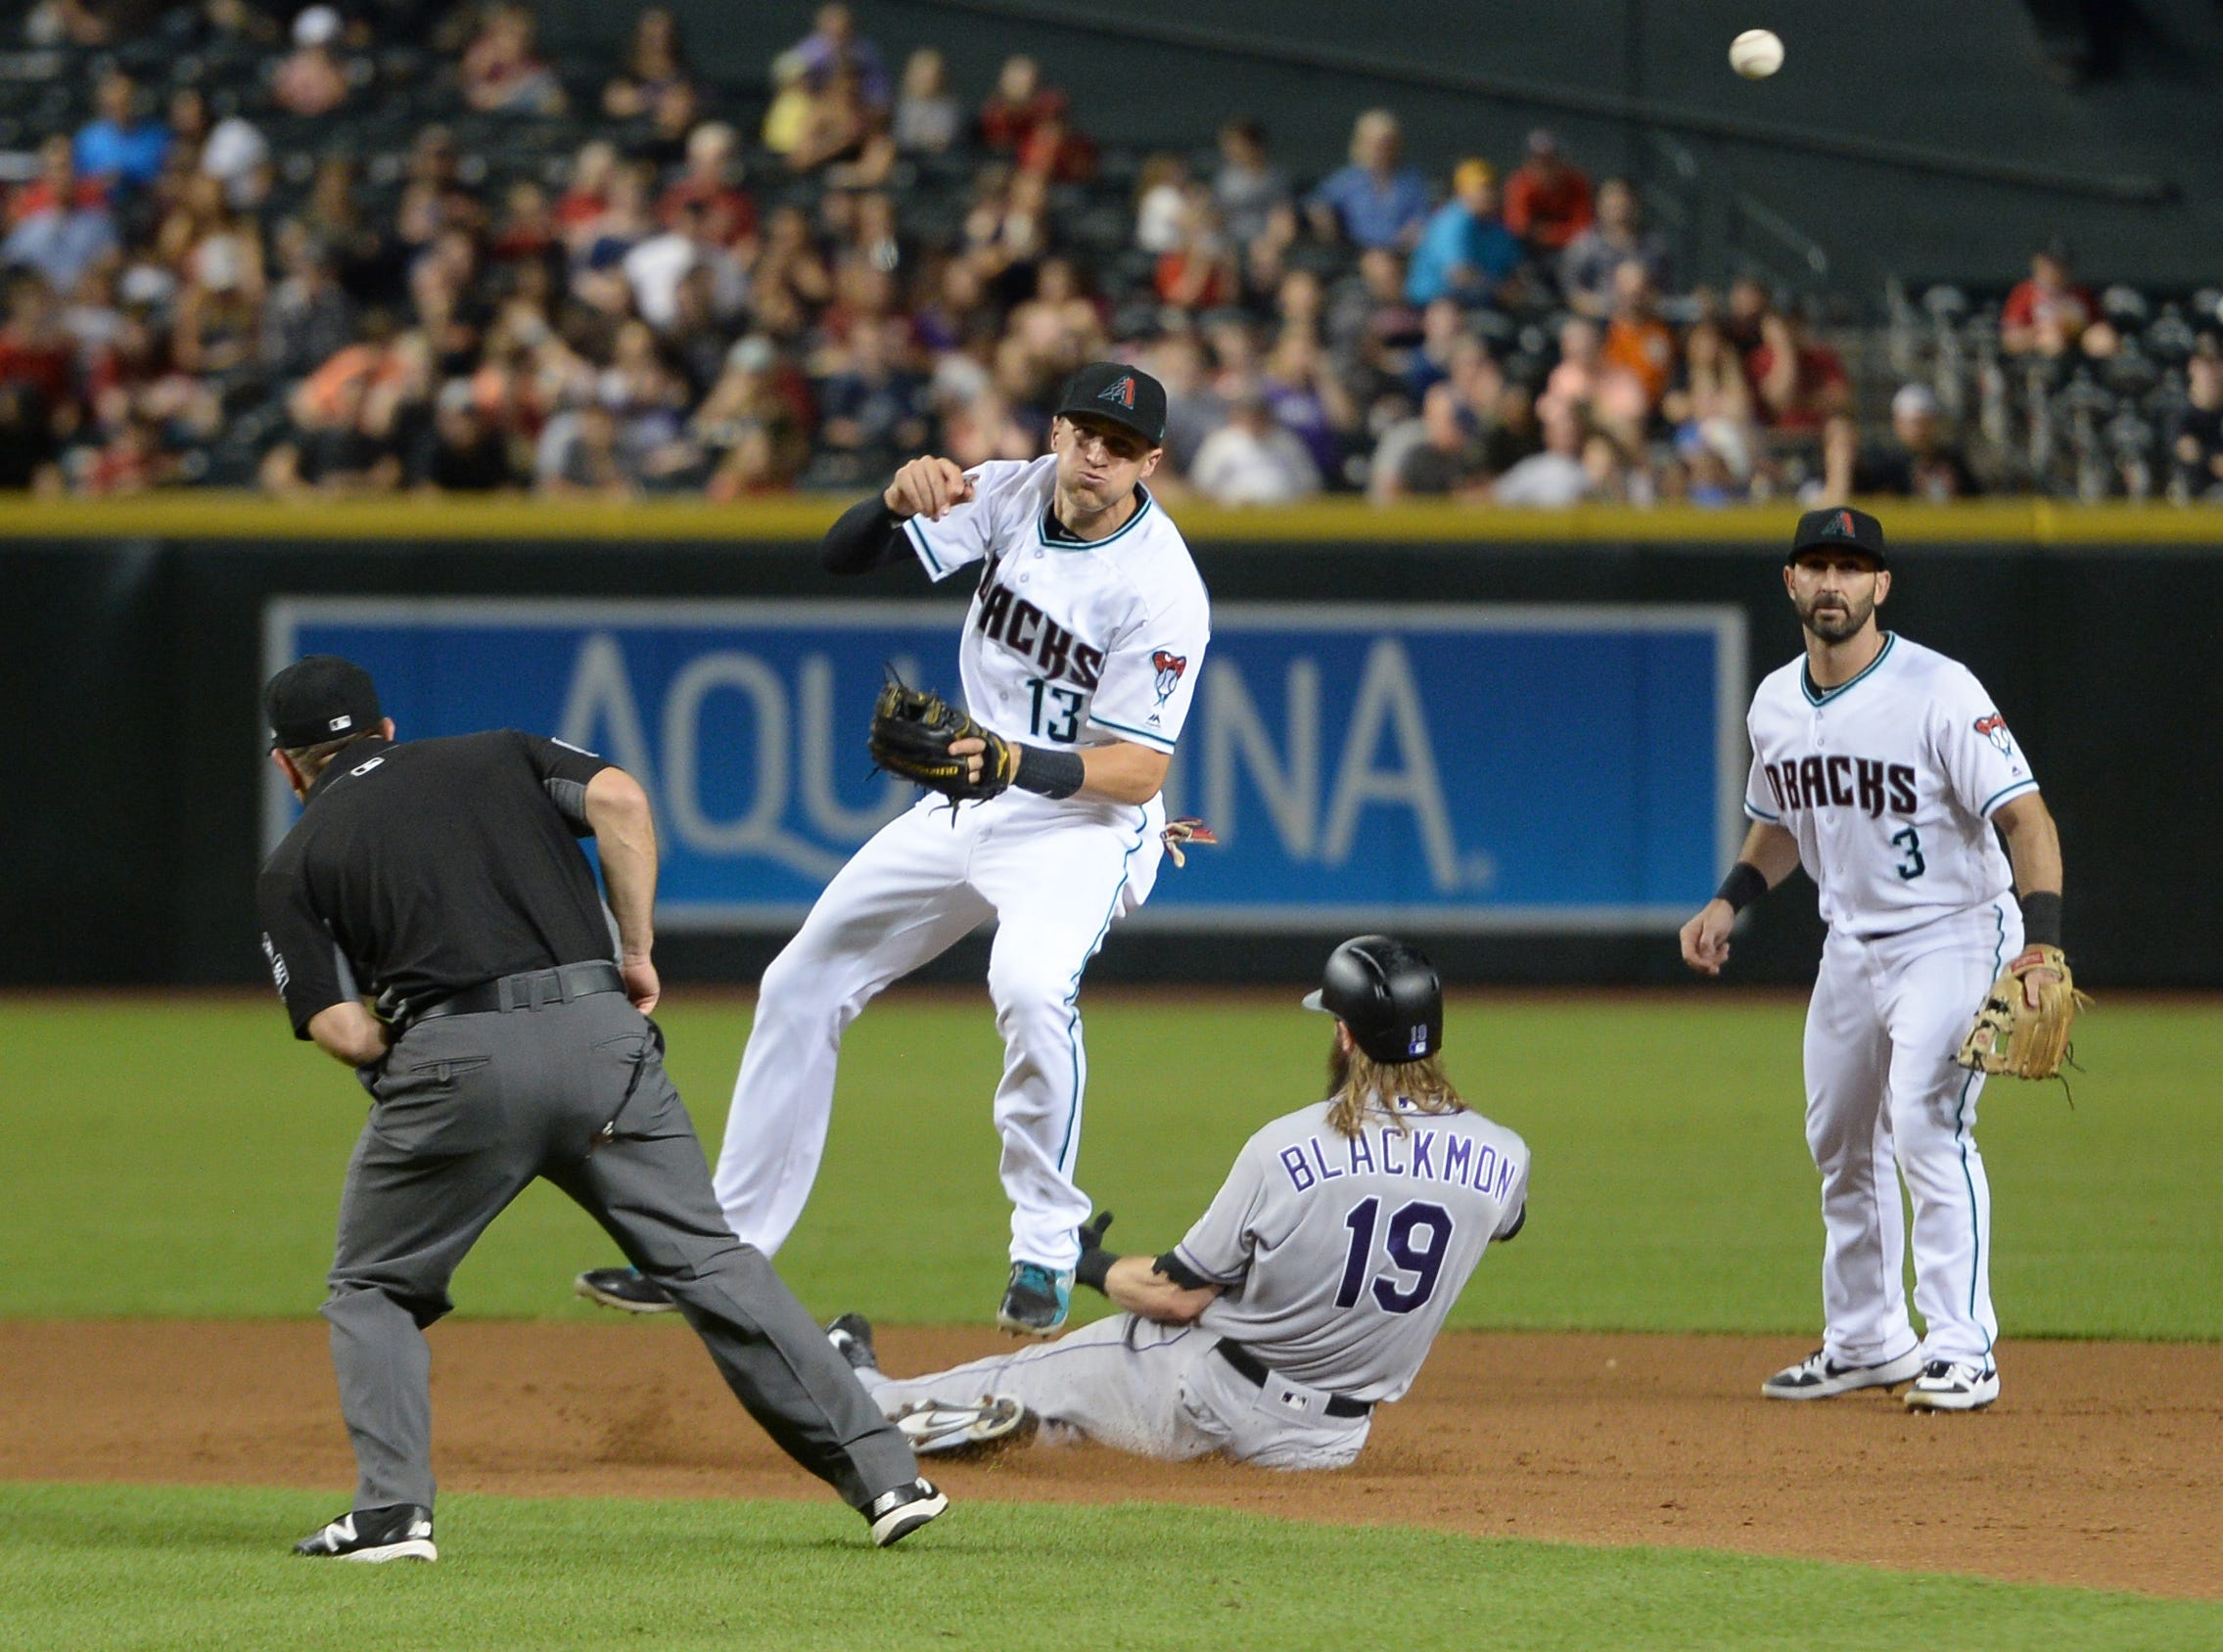 Sep 21, 2018; Phoenix, AZ, USA; Colorado Rockies center fielder Charlie Blackmon (19) attempts to break up a double play attempt by Arizona Diamondbacks shortstop Nick Ahmed (13) during the eighth inning at Chase Field.